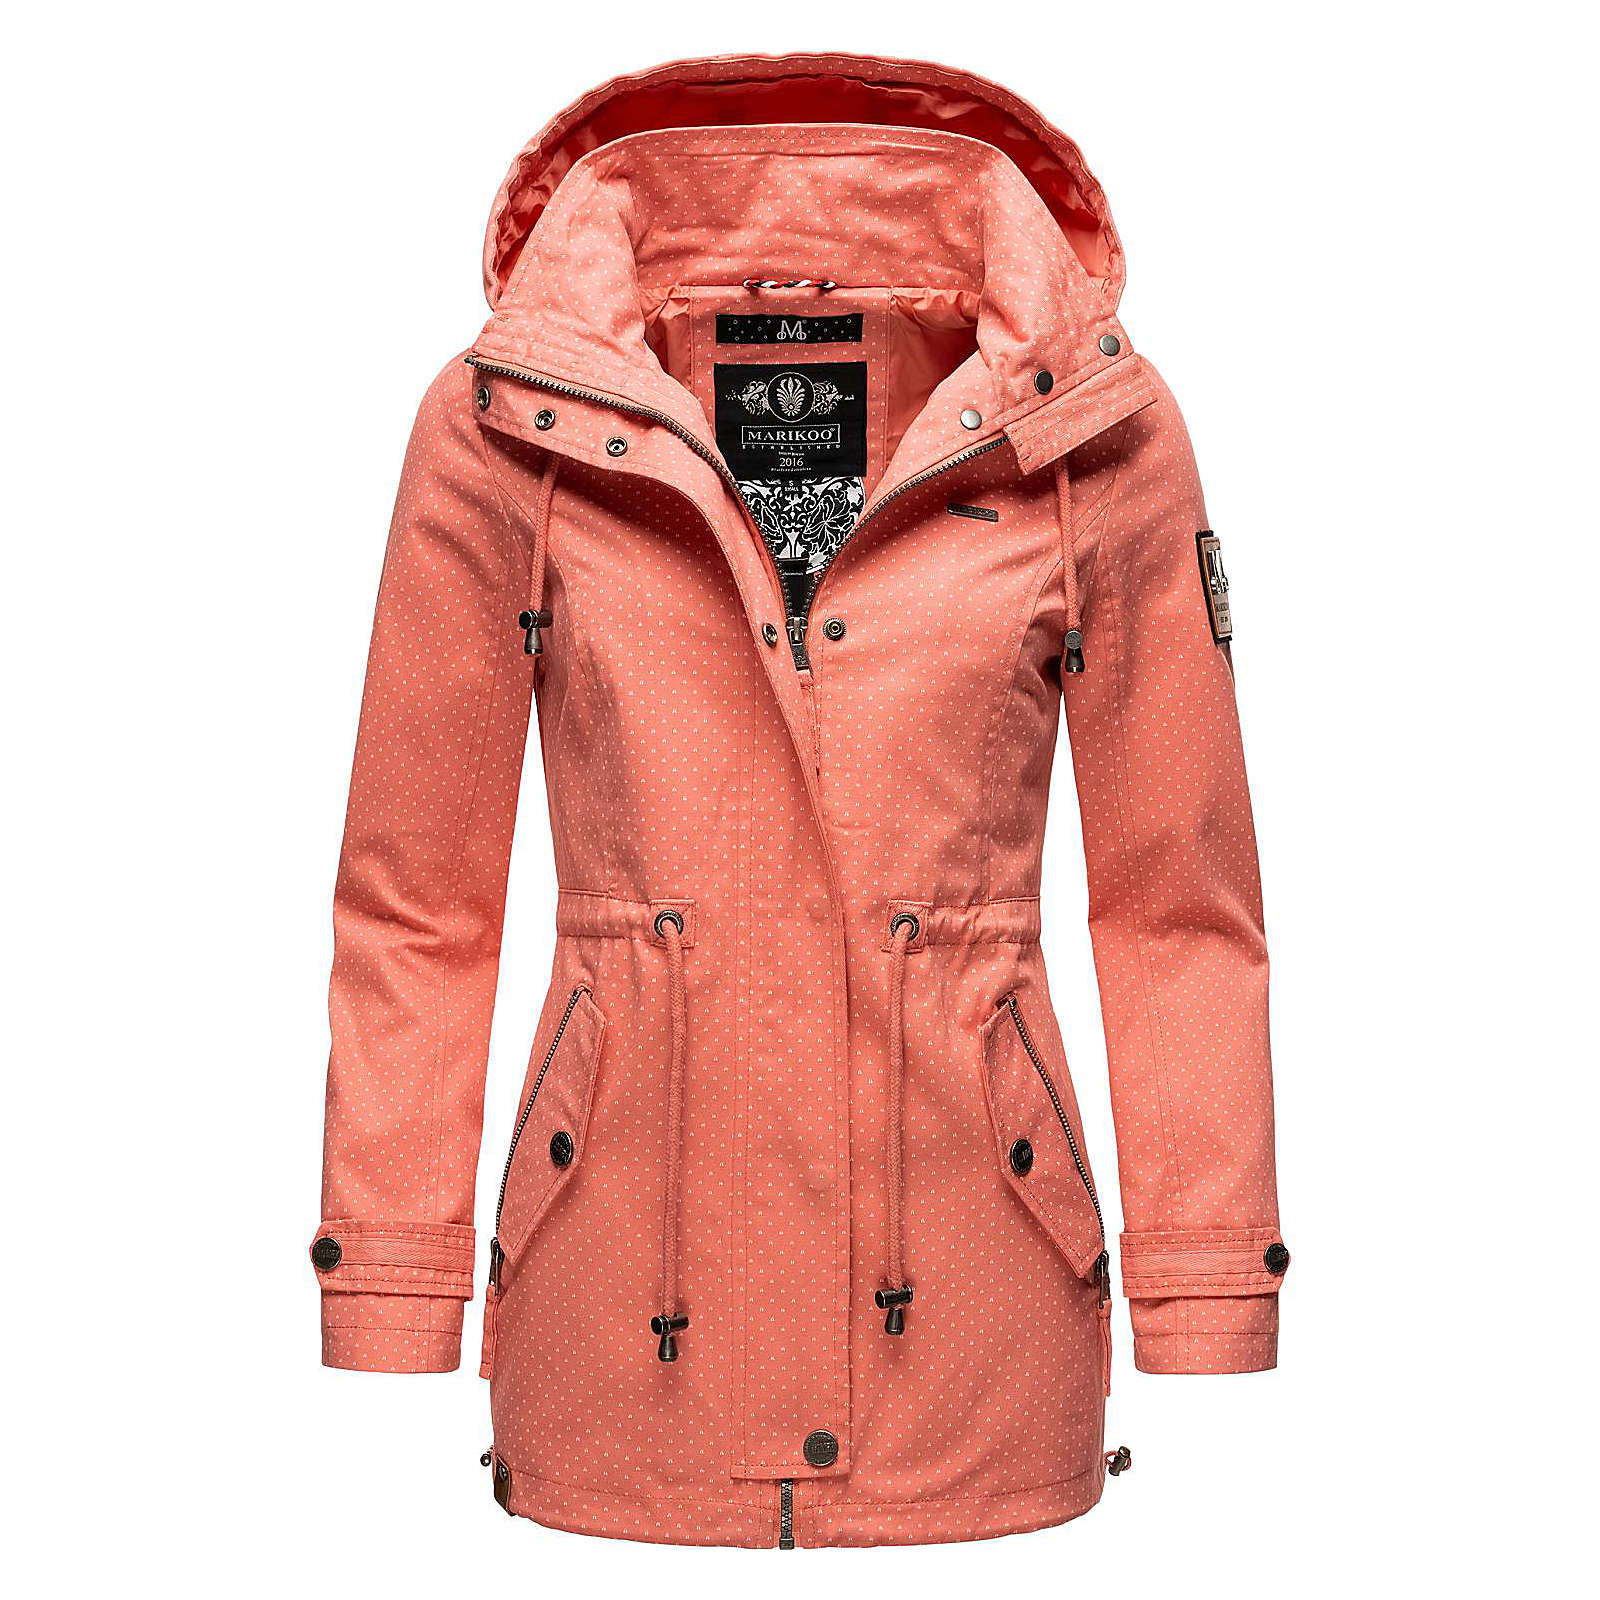 MARIKOO Outdoorjacke Nyokoo Übergangsjacken orange Damen Gr. 34 von MARIKOO